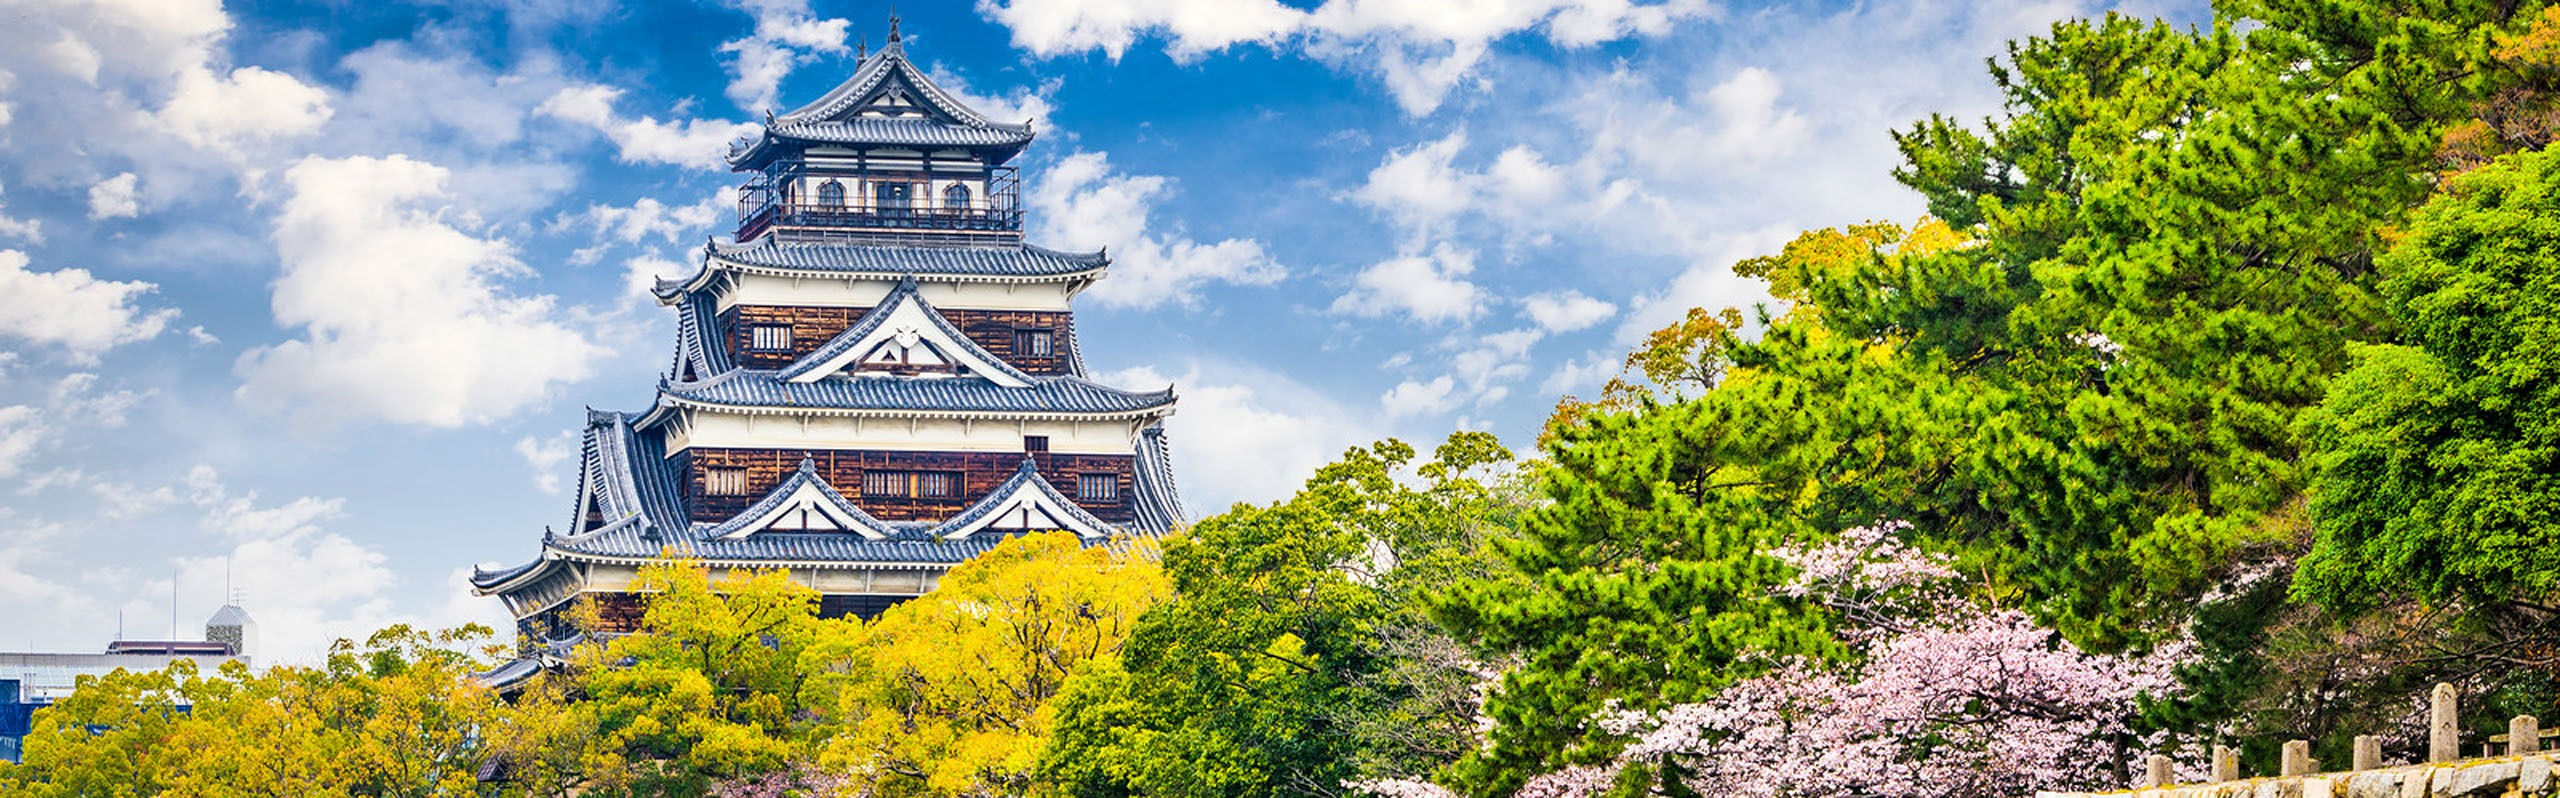 Top 6 Attractions in Hiroshima - Things to See